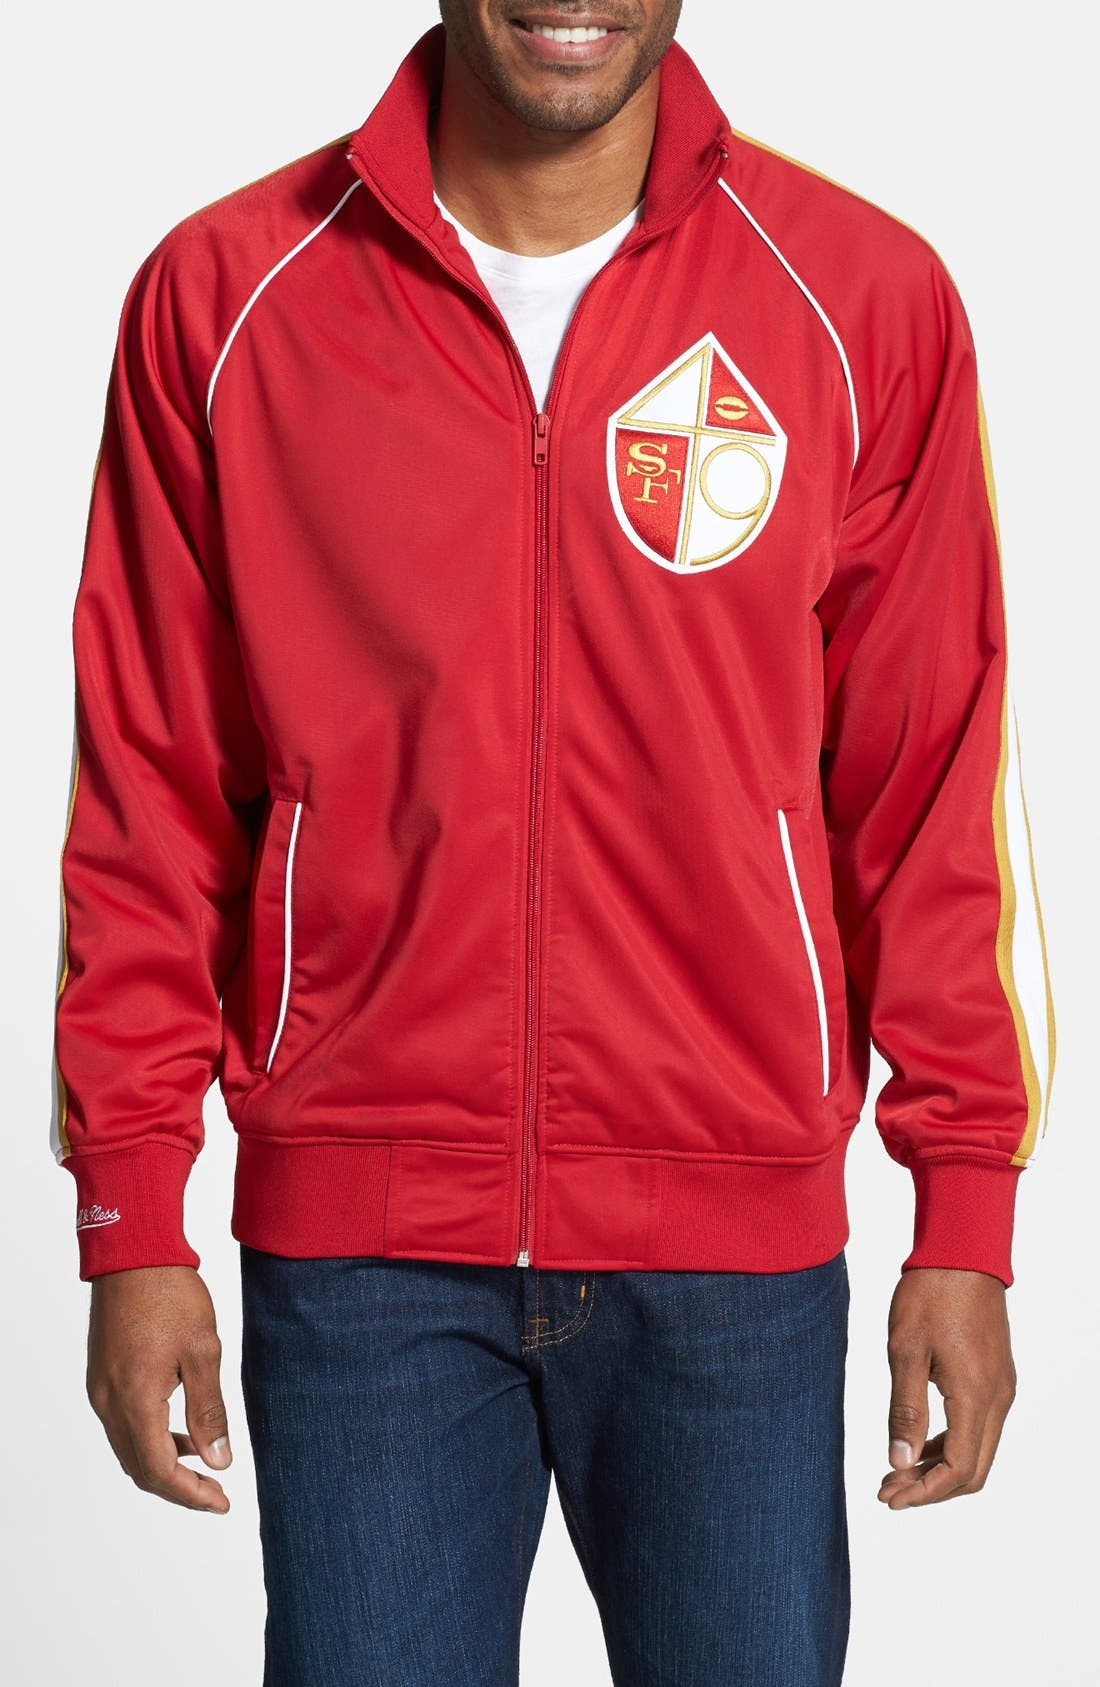 Main Image - Mitchell & Ness 'Snap Pass - San Francisco 49ers' Track Jacket